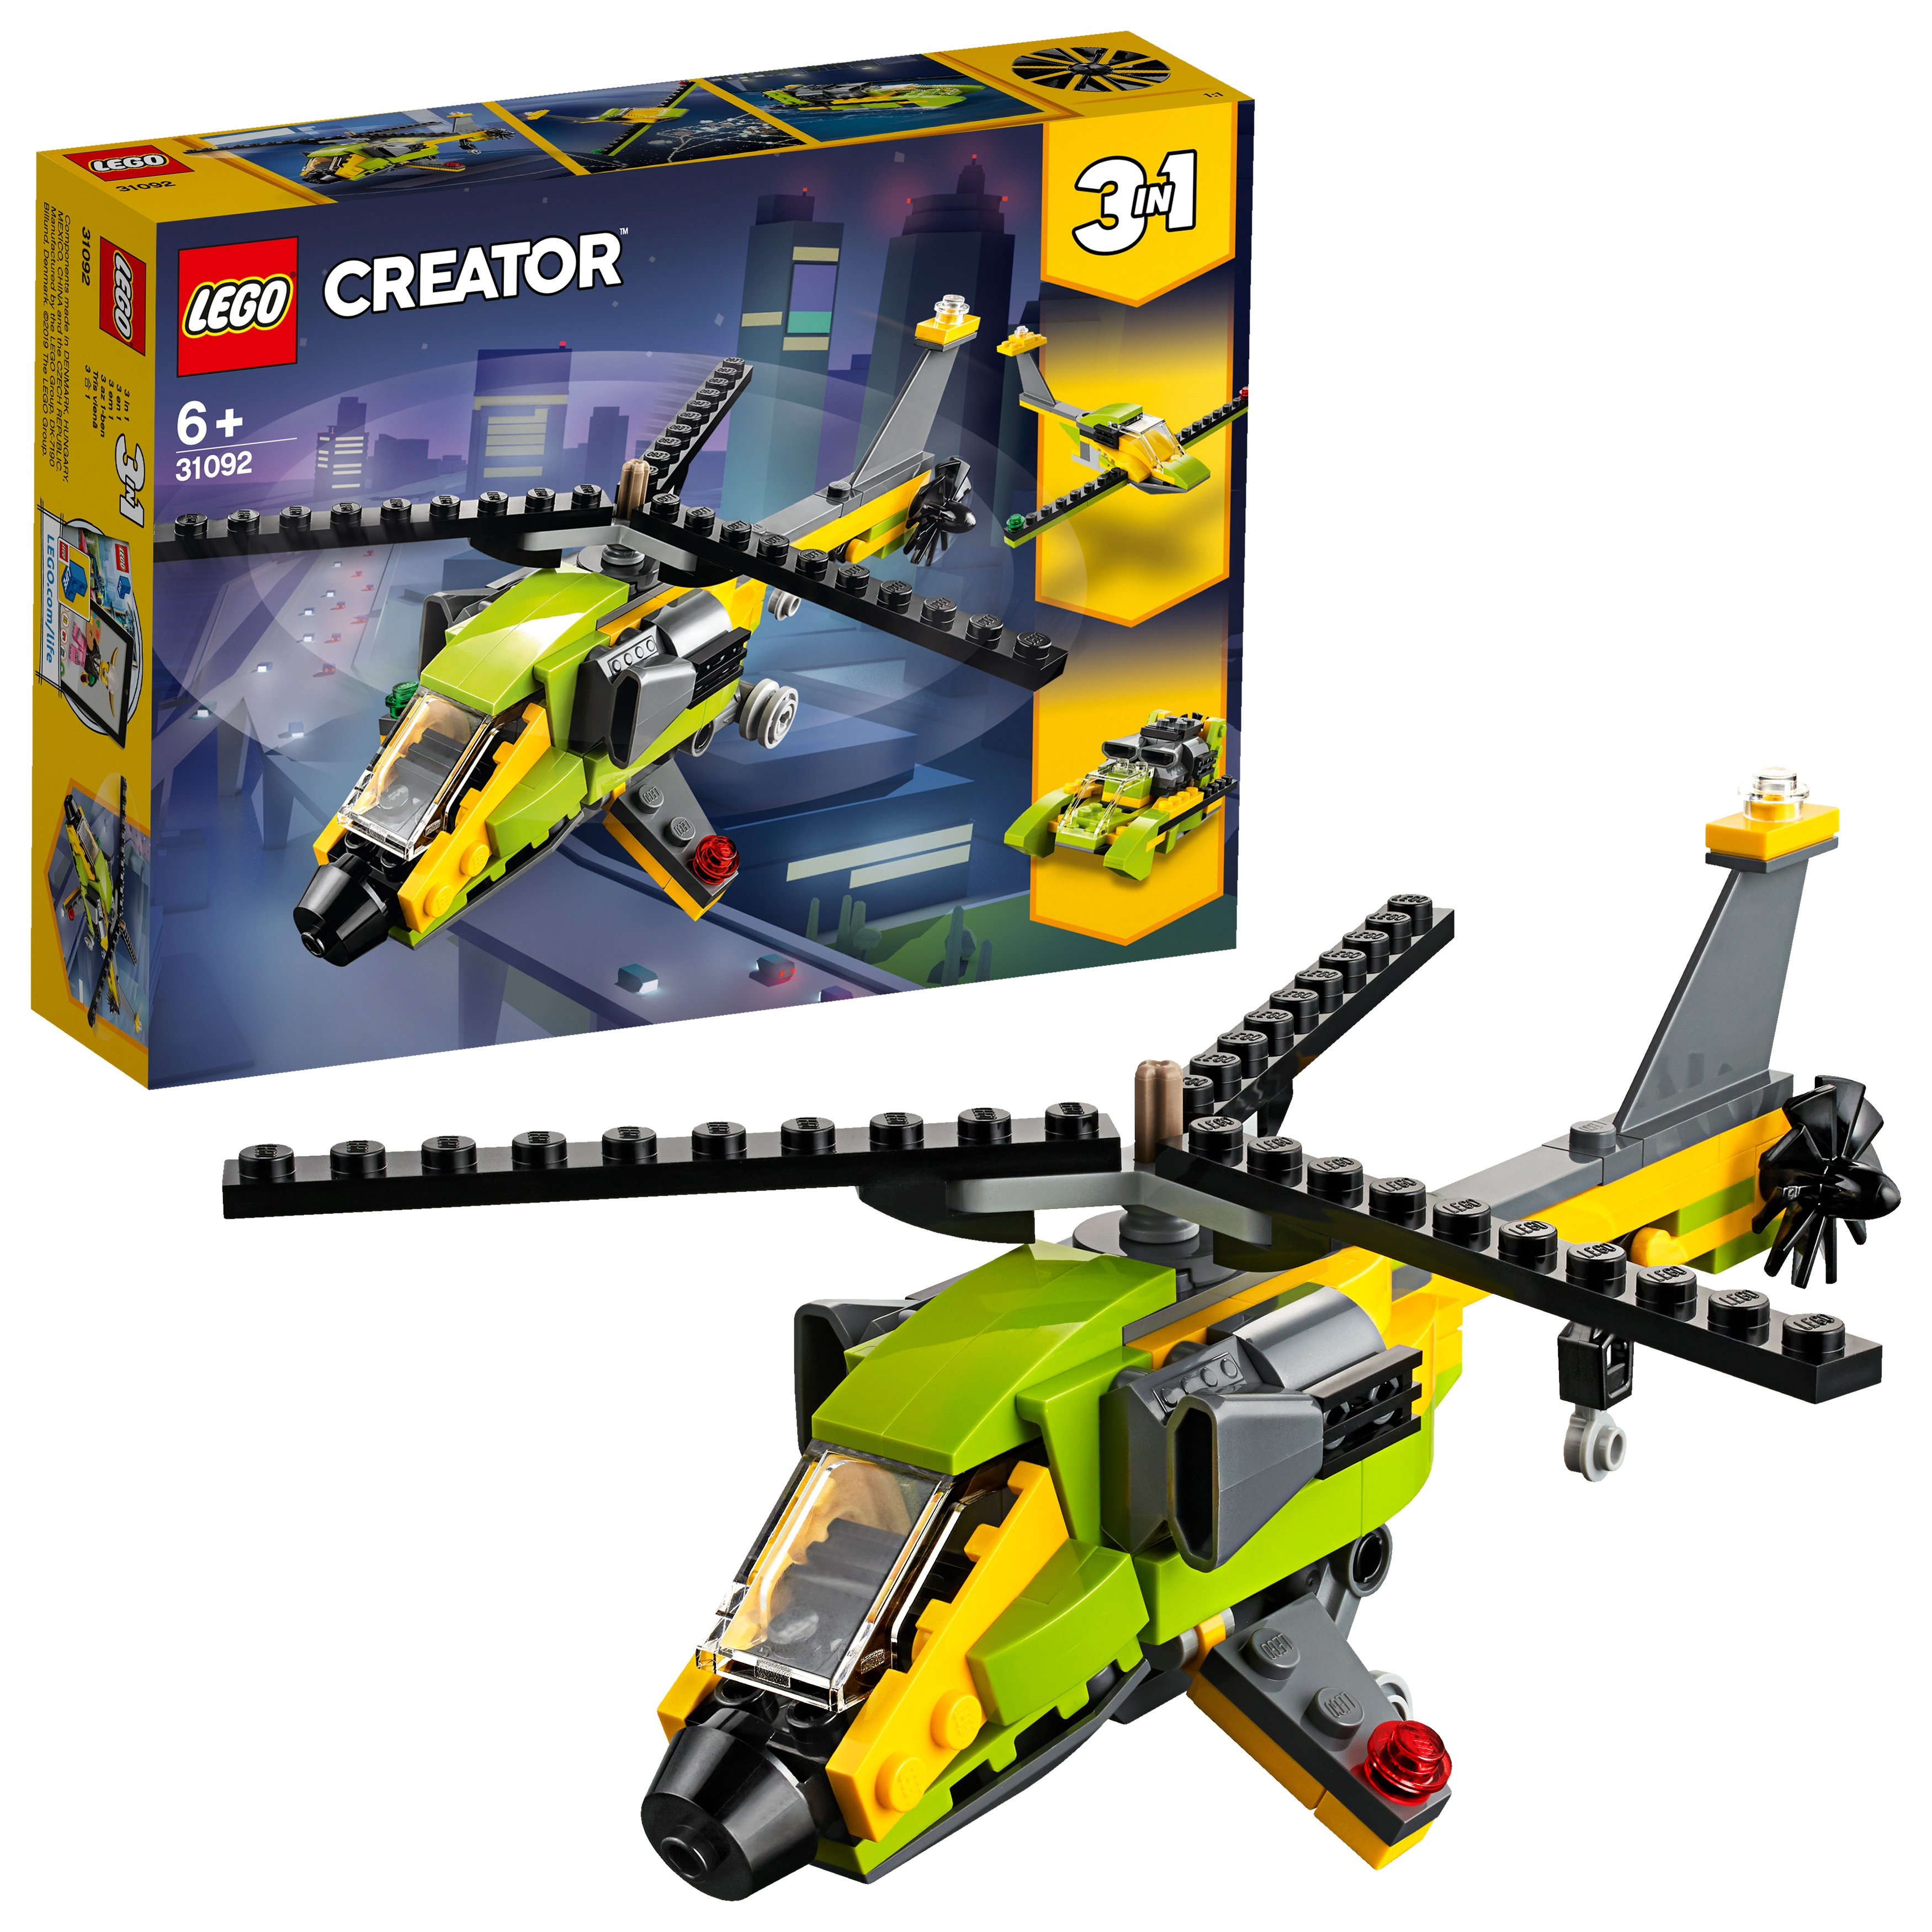 LEGO Creator - Helicopter Adventure (31092)